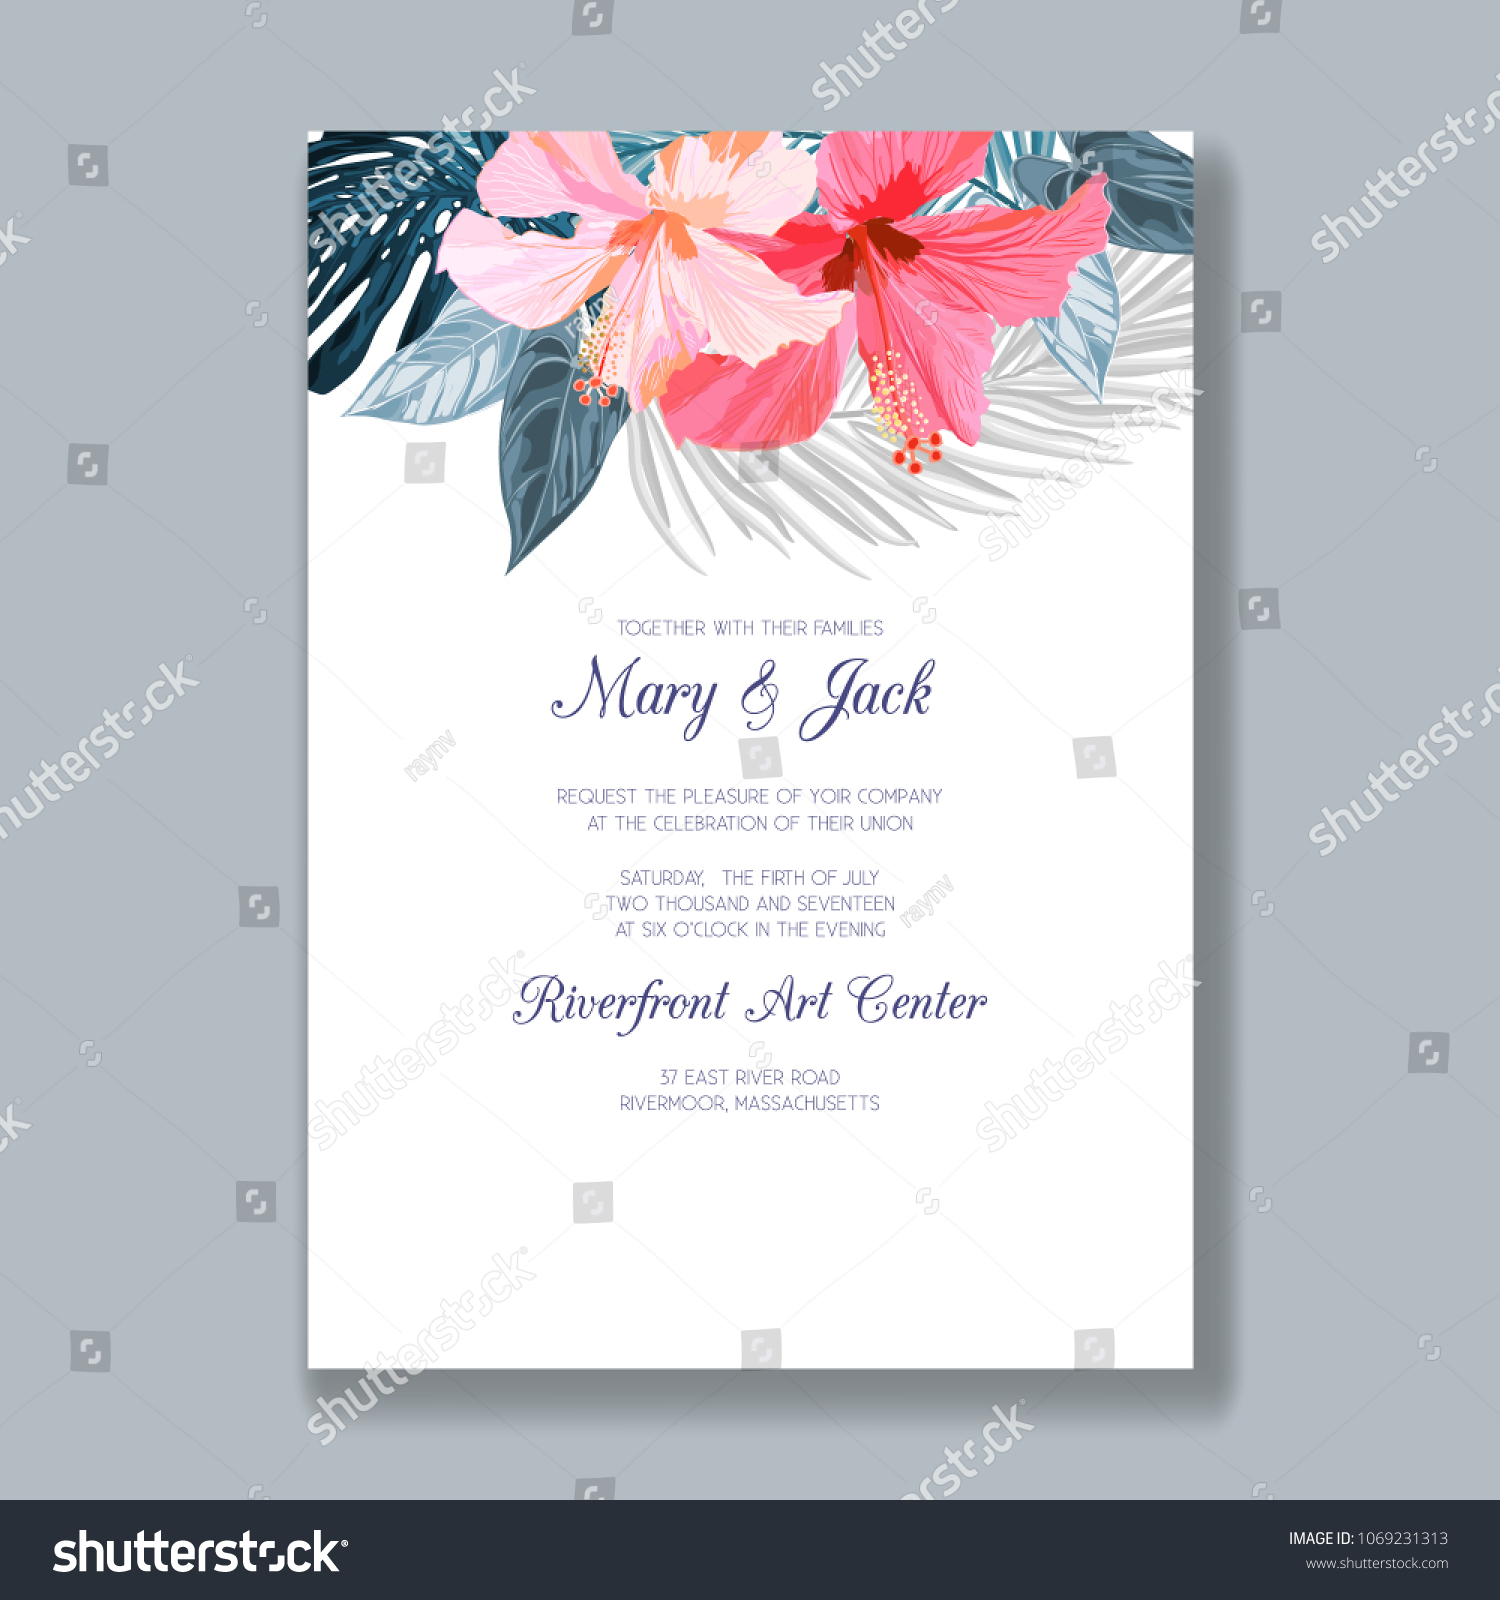 Wedding Invitation Template Tropical Flowers Leaves Stock Vector ...